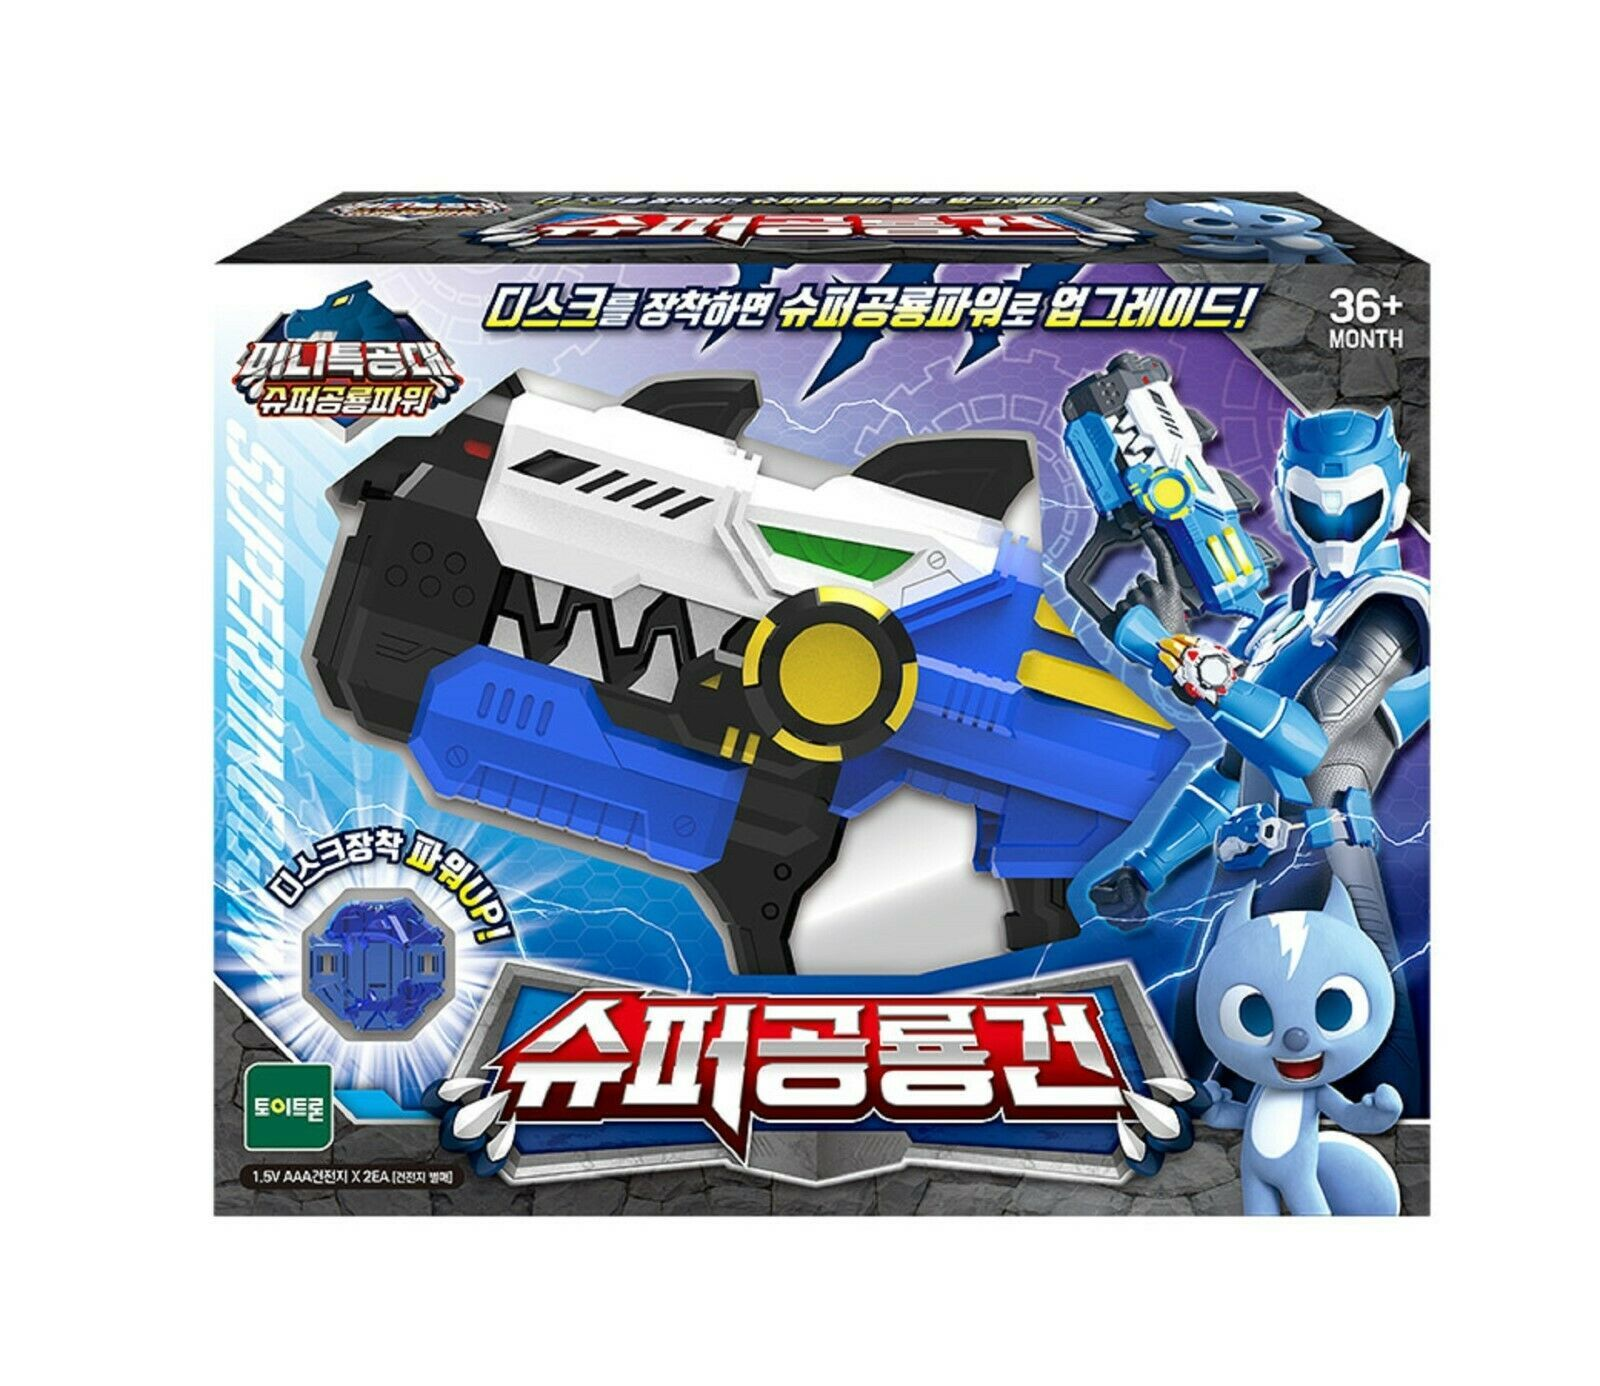 Miniforce Super Dinosaur Gun Super Dinosaur Power Toy Sound Gun Weapon